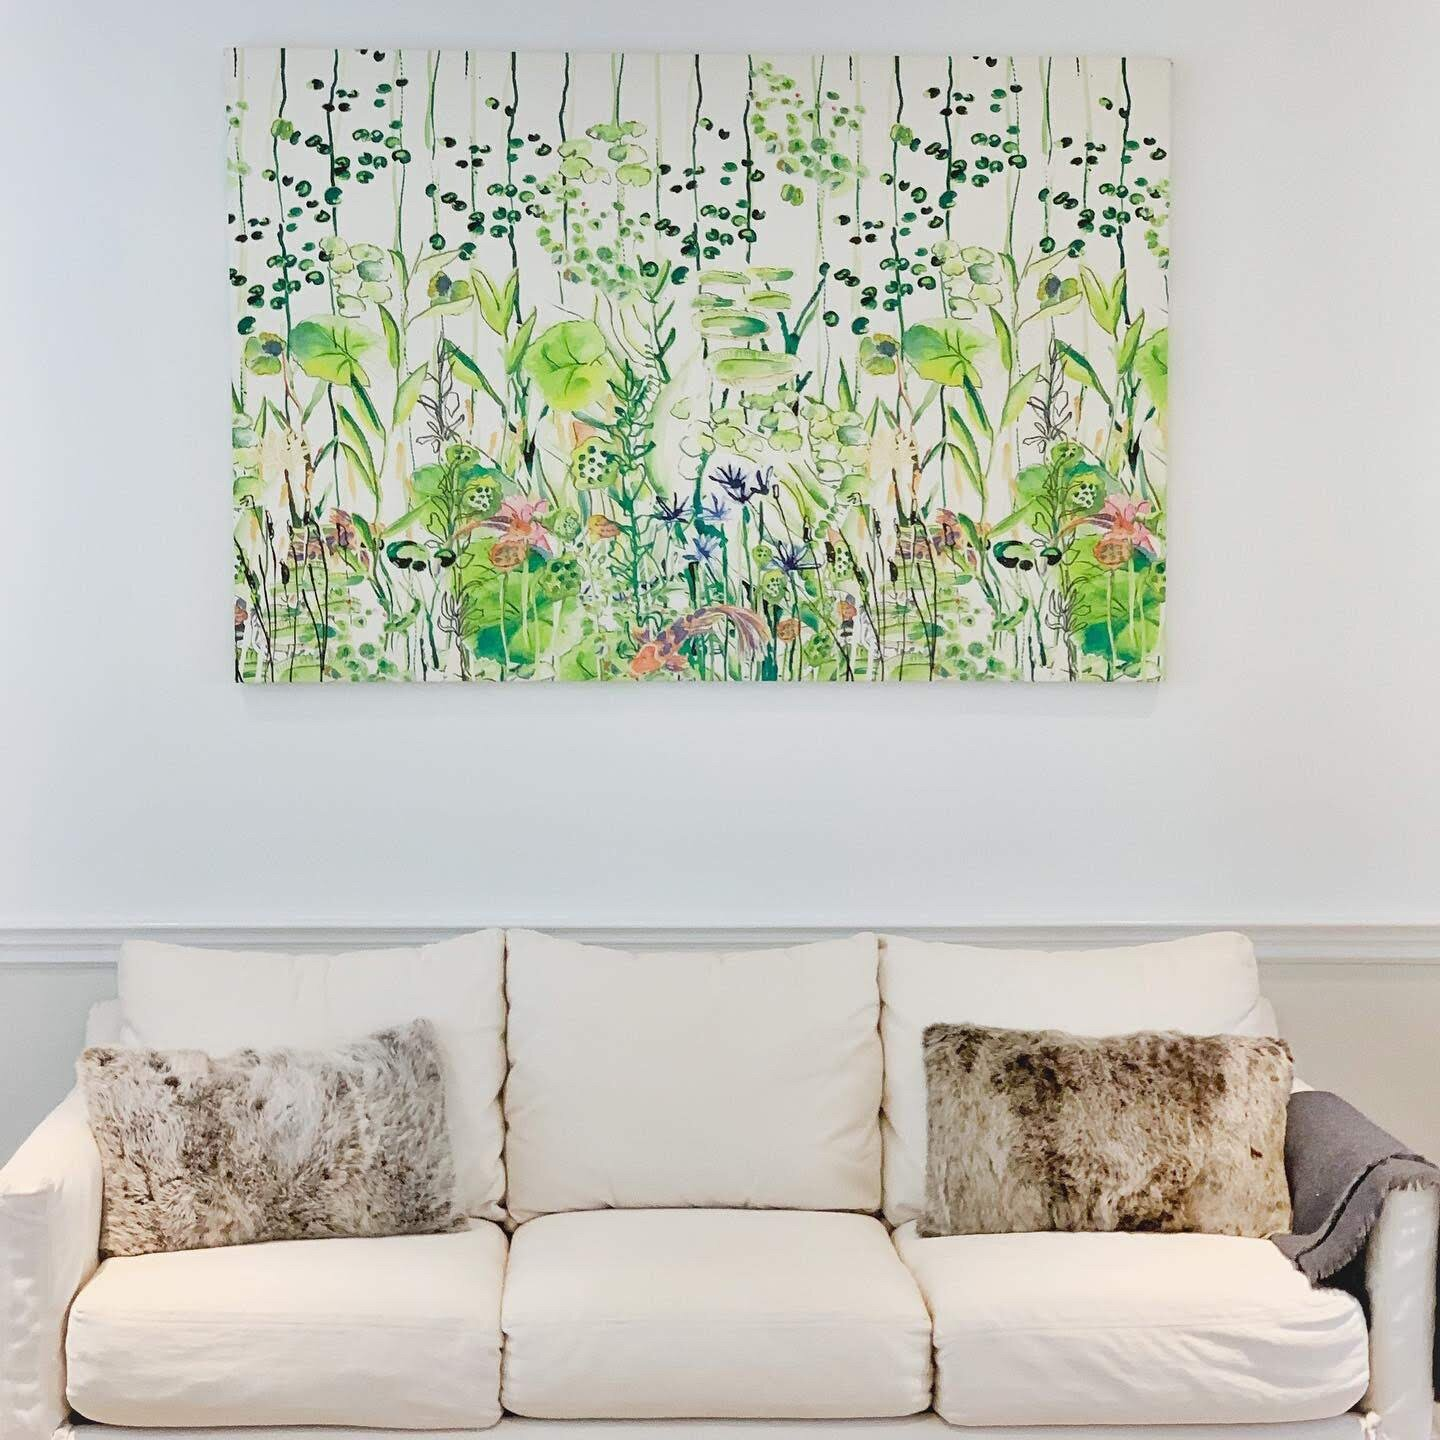 TEXTILE ART - Custom Textile art for your home.